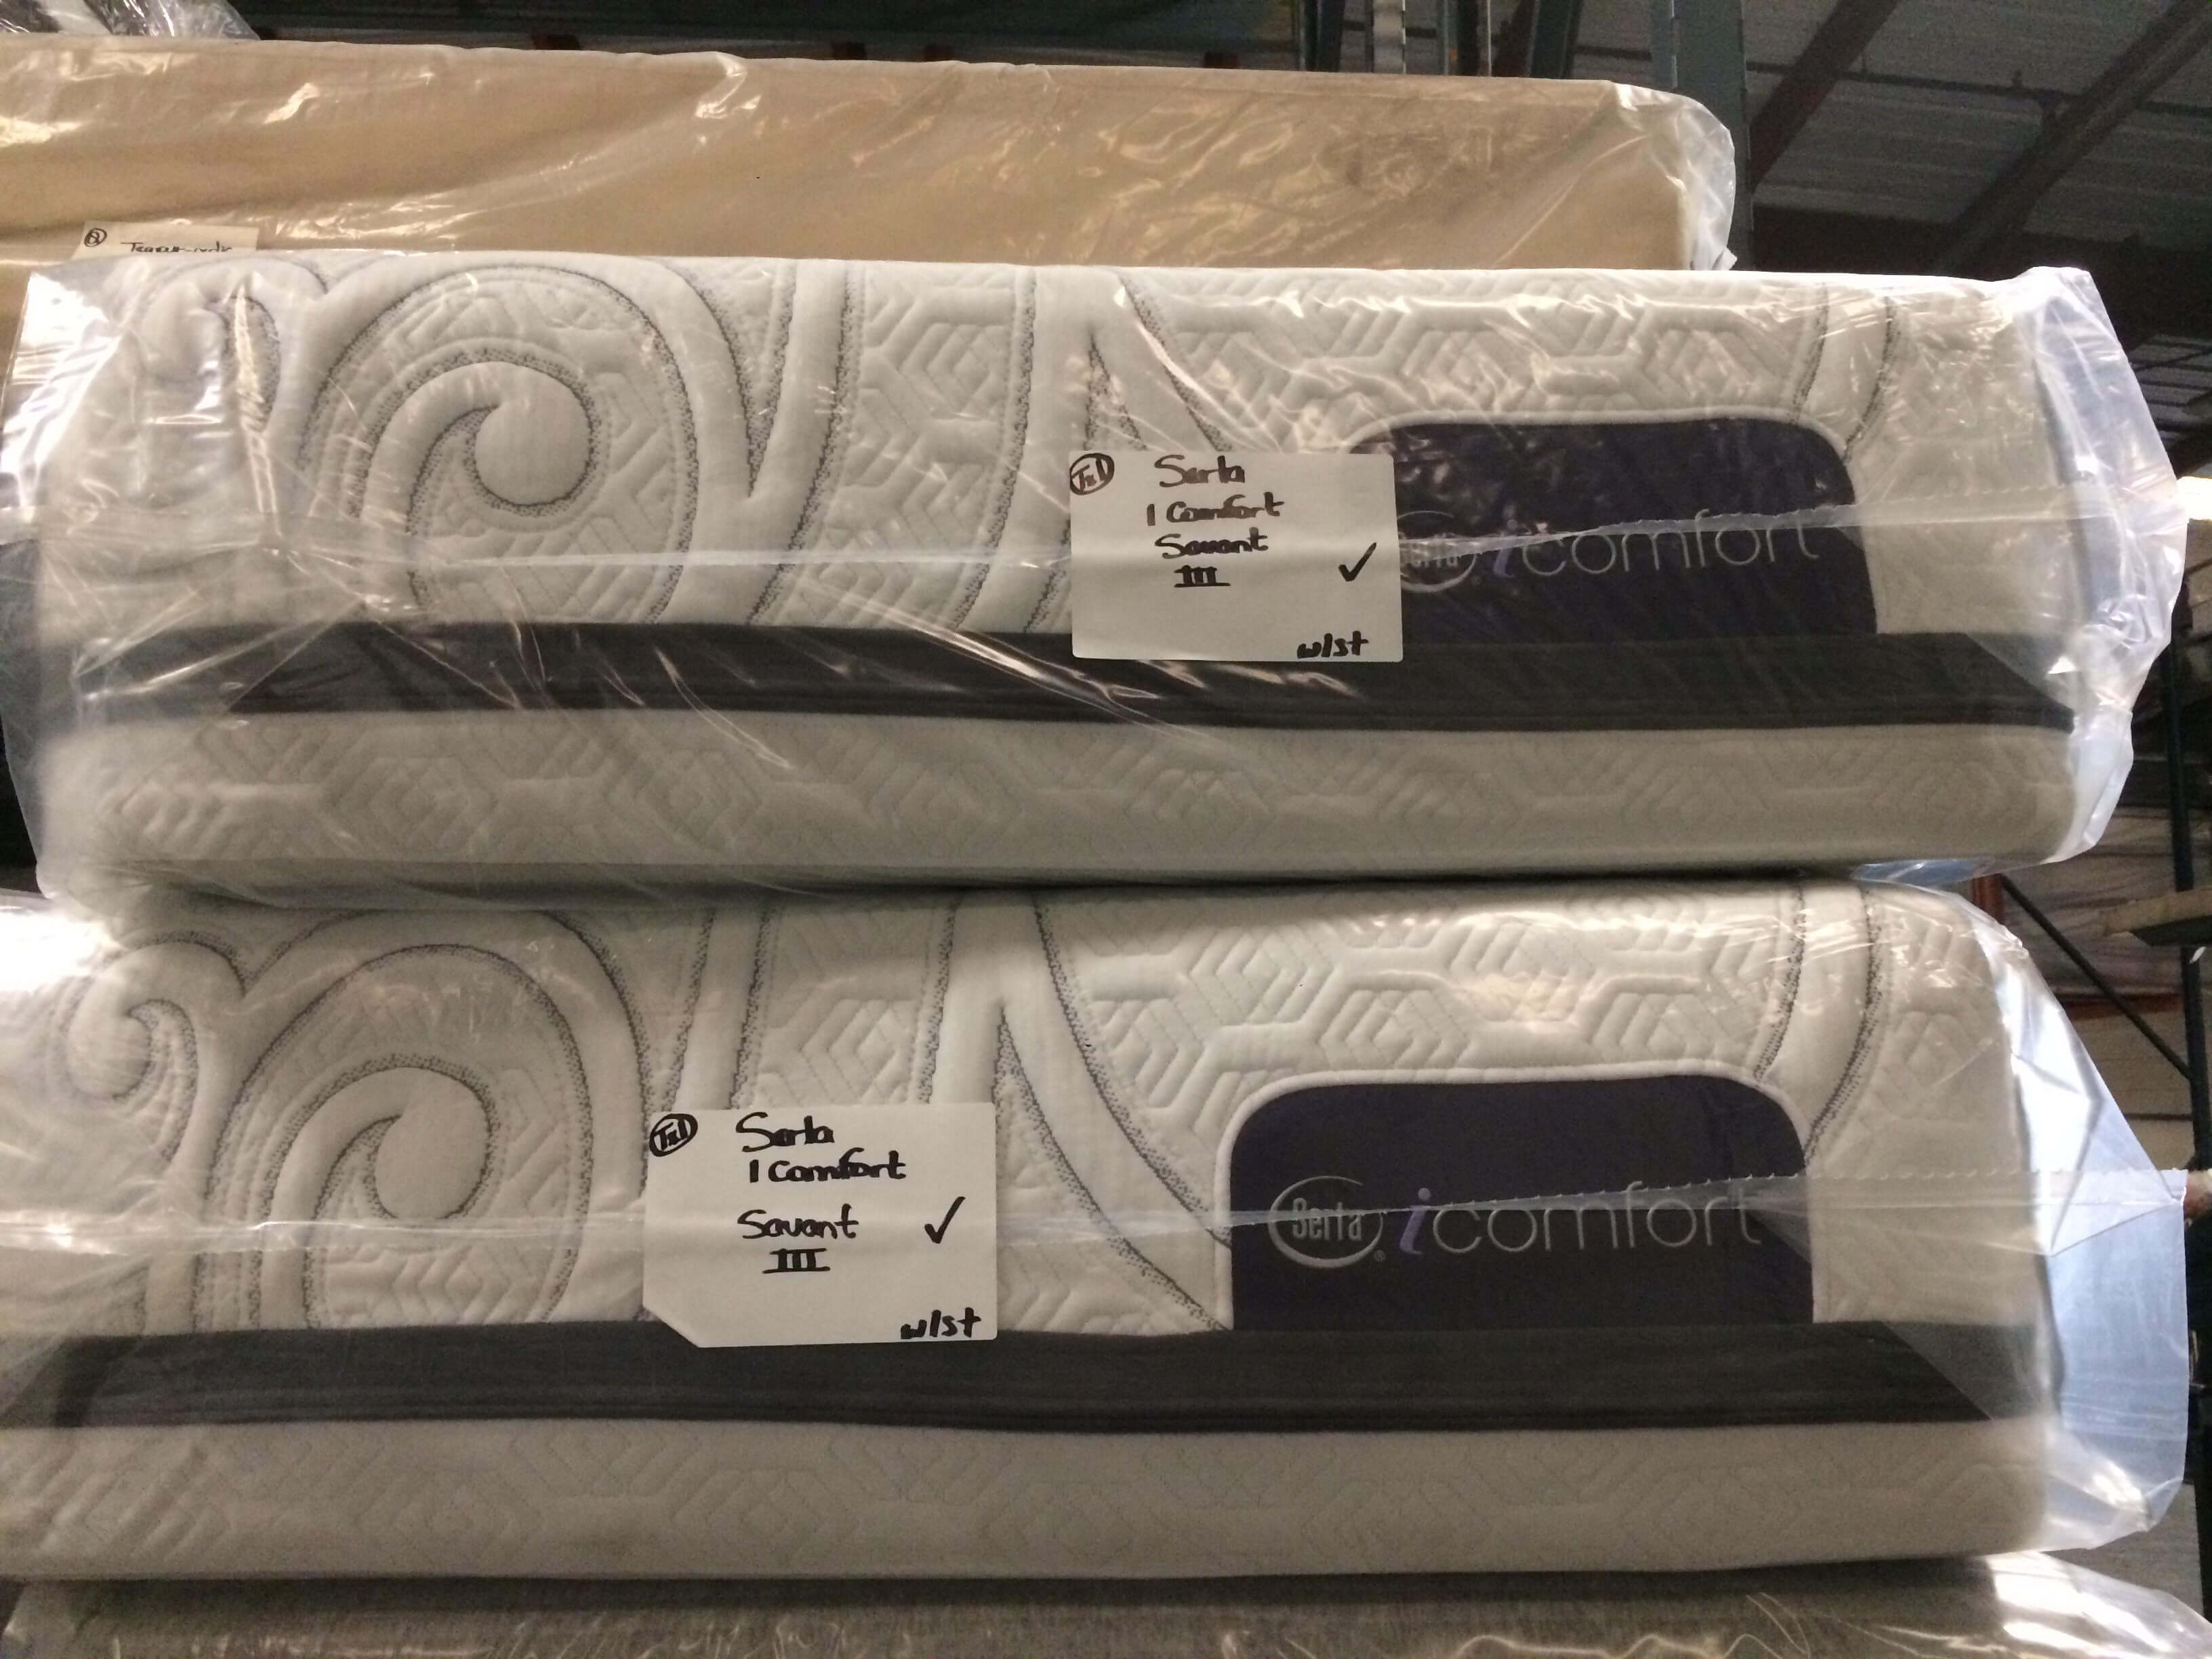 Serta Icomfort Savant Iii Plush Memory Foam Split King Mattress